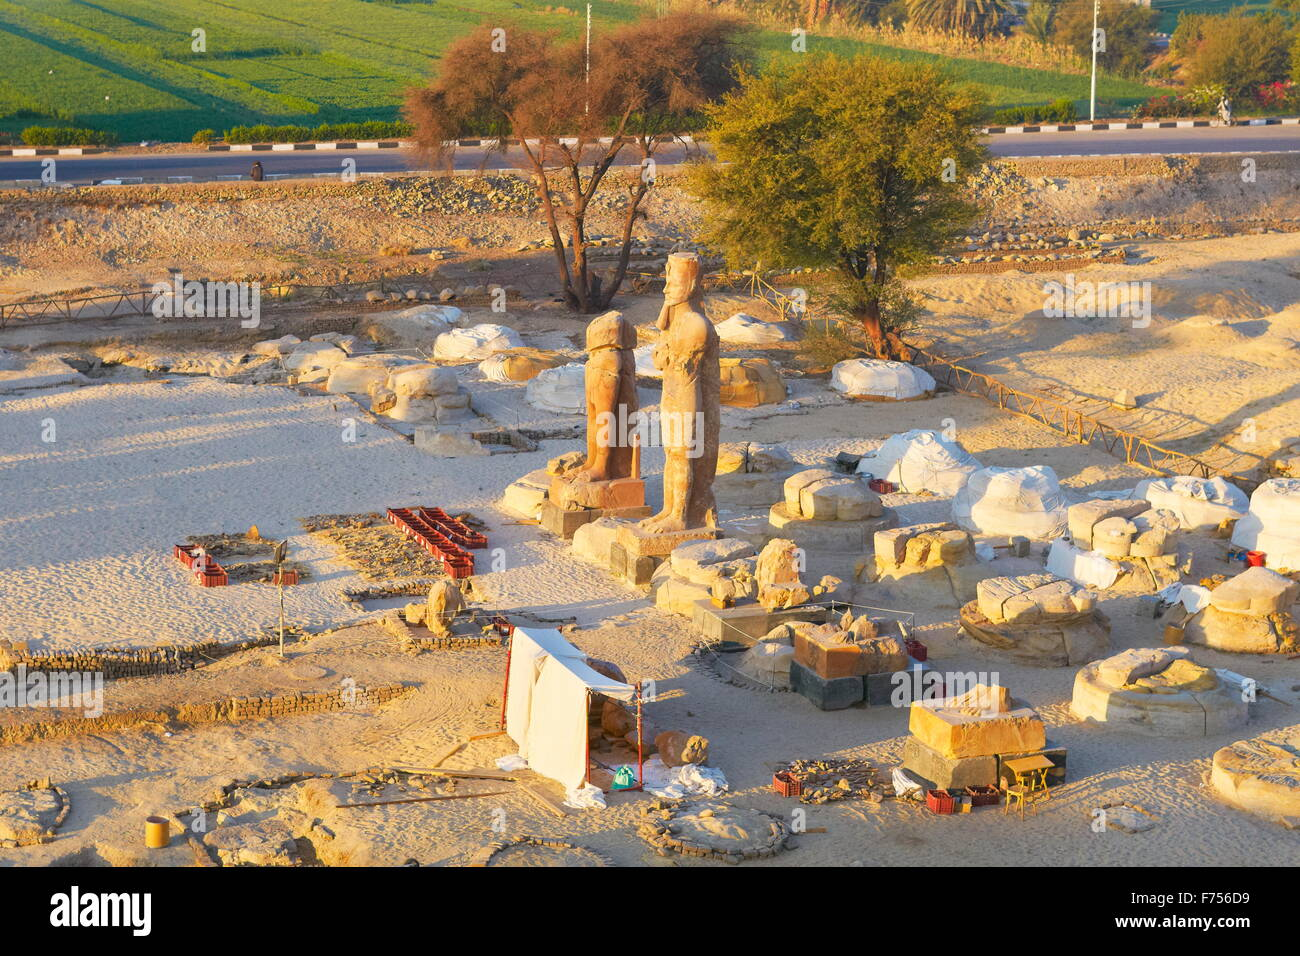 Egypt - archaeological site near Thebes - Stock Image